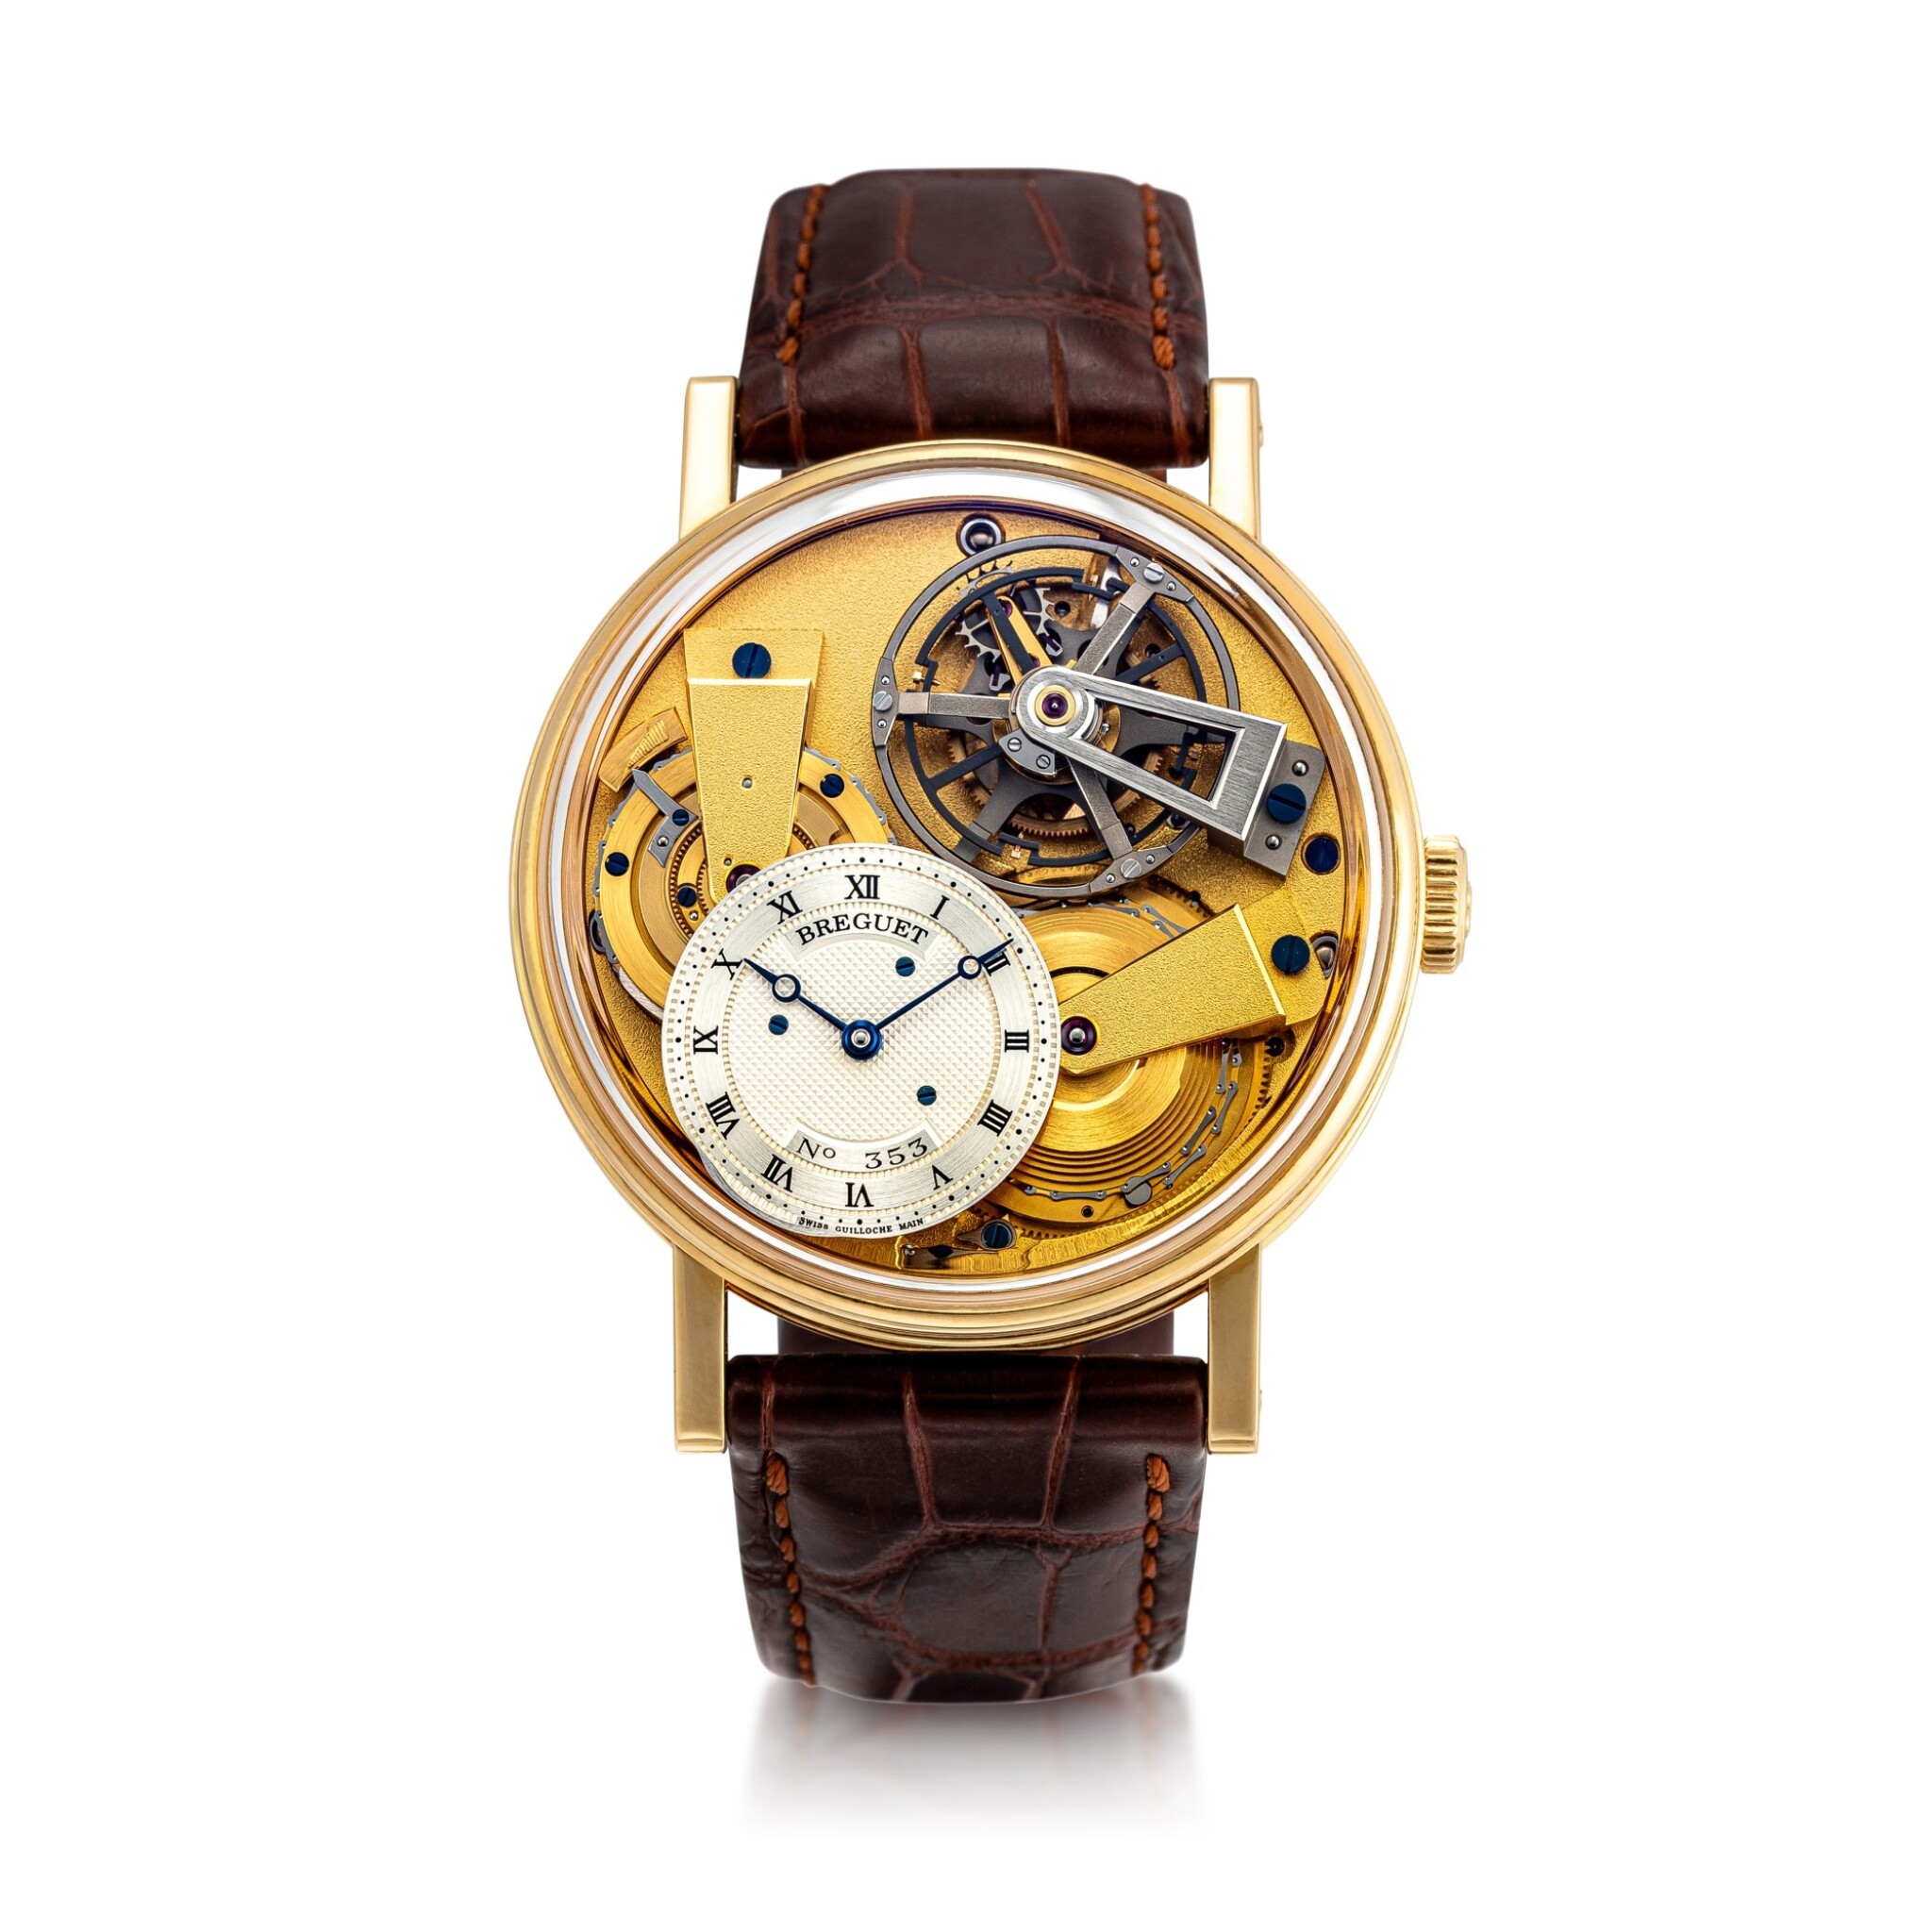 View 1 of Lot 8005. Breguet | La Tradition, Reference 7047, A yellow gold semi-skeletonised tourbillon wristwatch with chain and fusée, silicon balance spring and power reserve indication, Circa 2012 | 寶璣 | La Tradition 型號7047 黃金半鏤空陀飛輪腕錶,備芝麻鏈、矽質擺輪及動力儲備顯示,約2012年製.